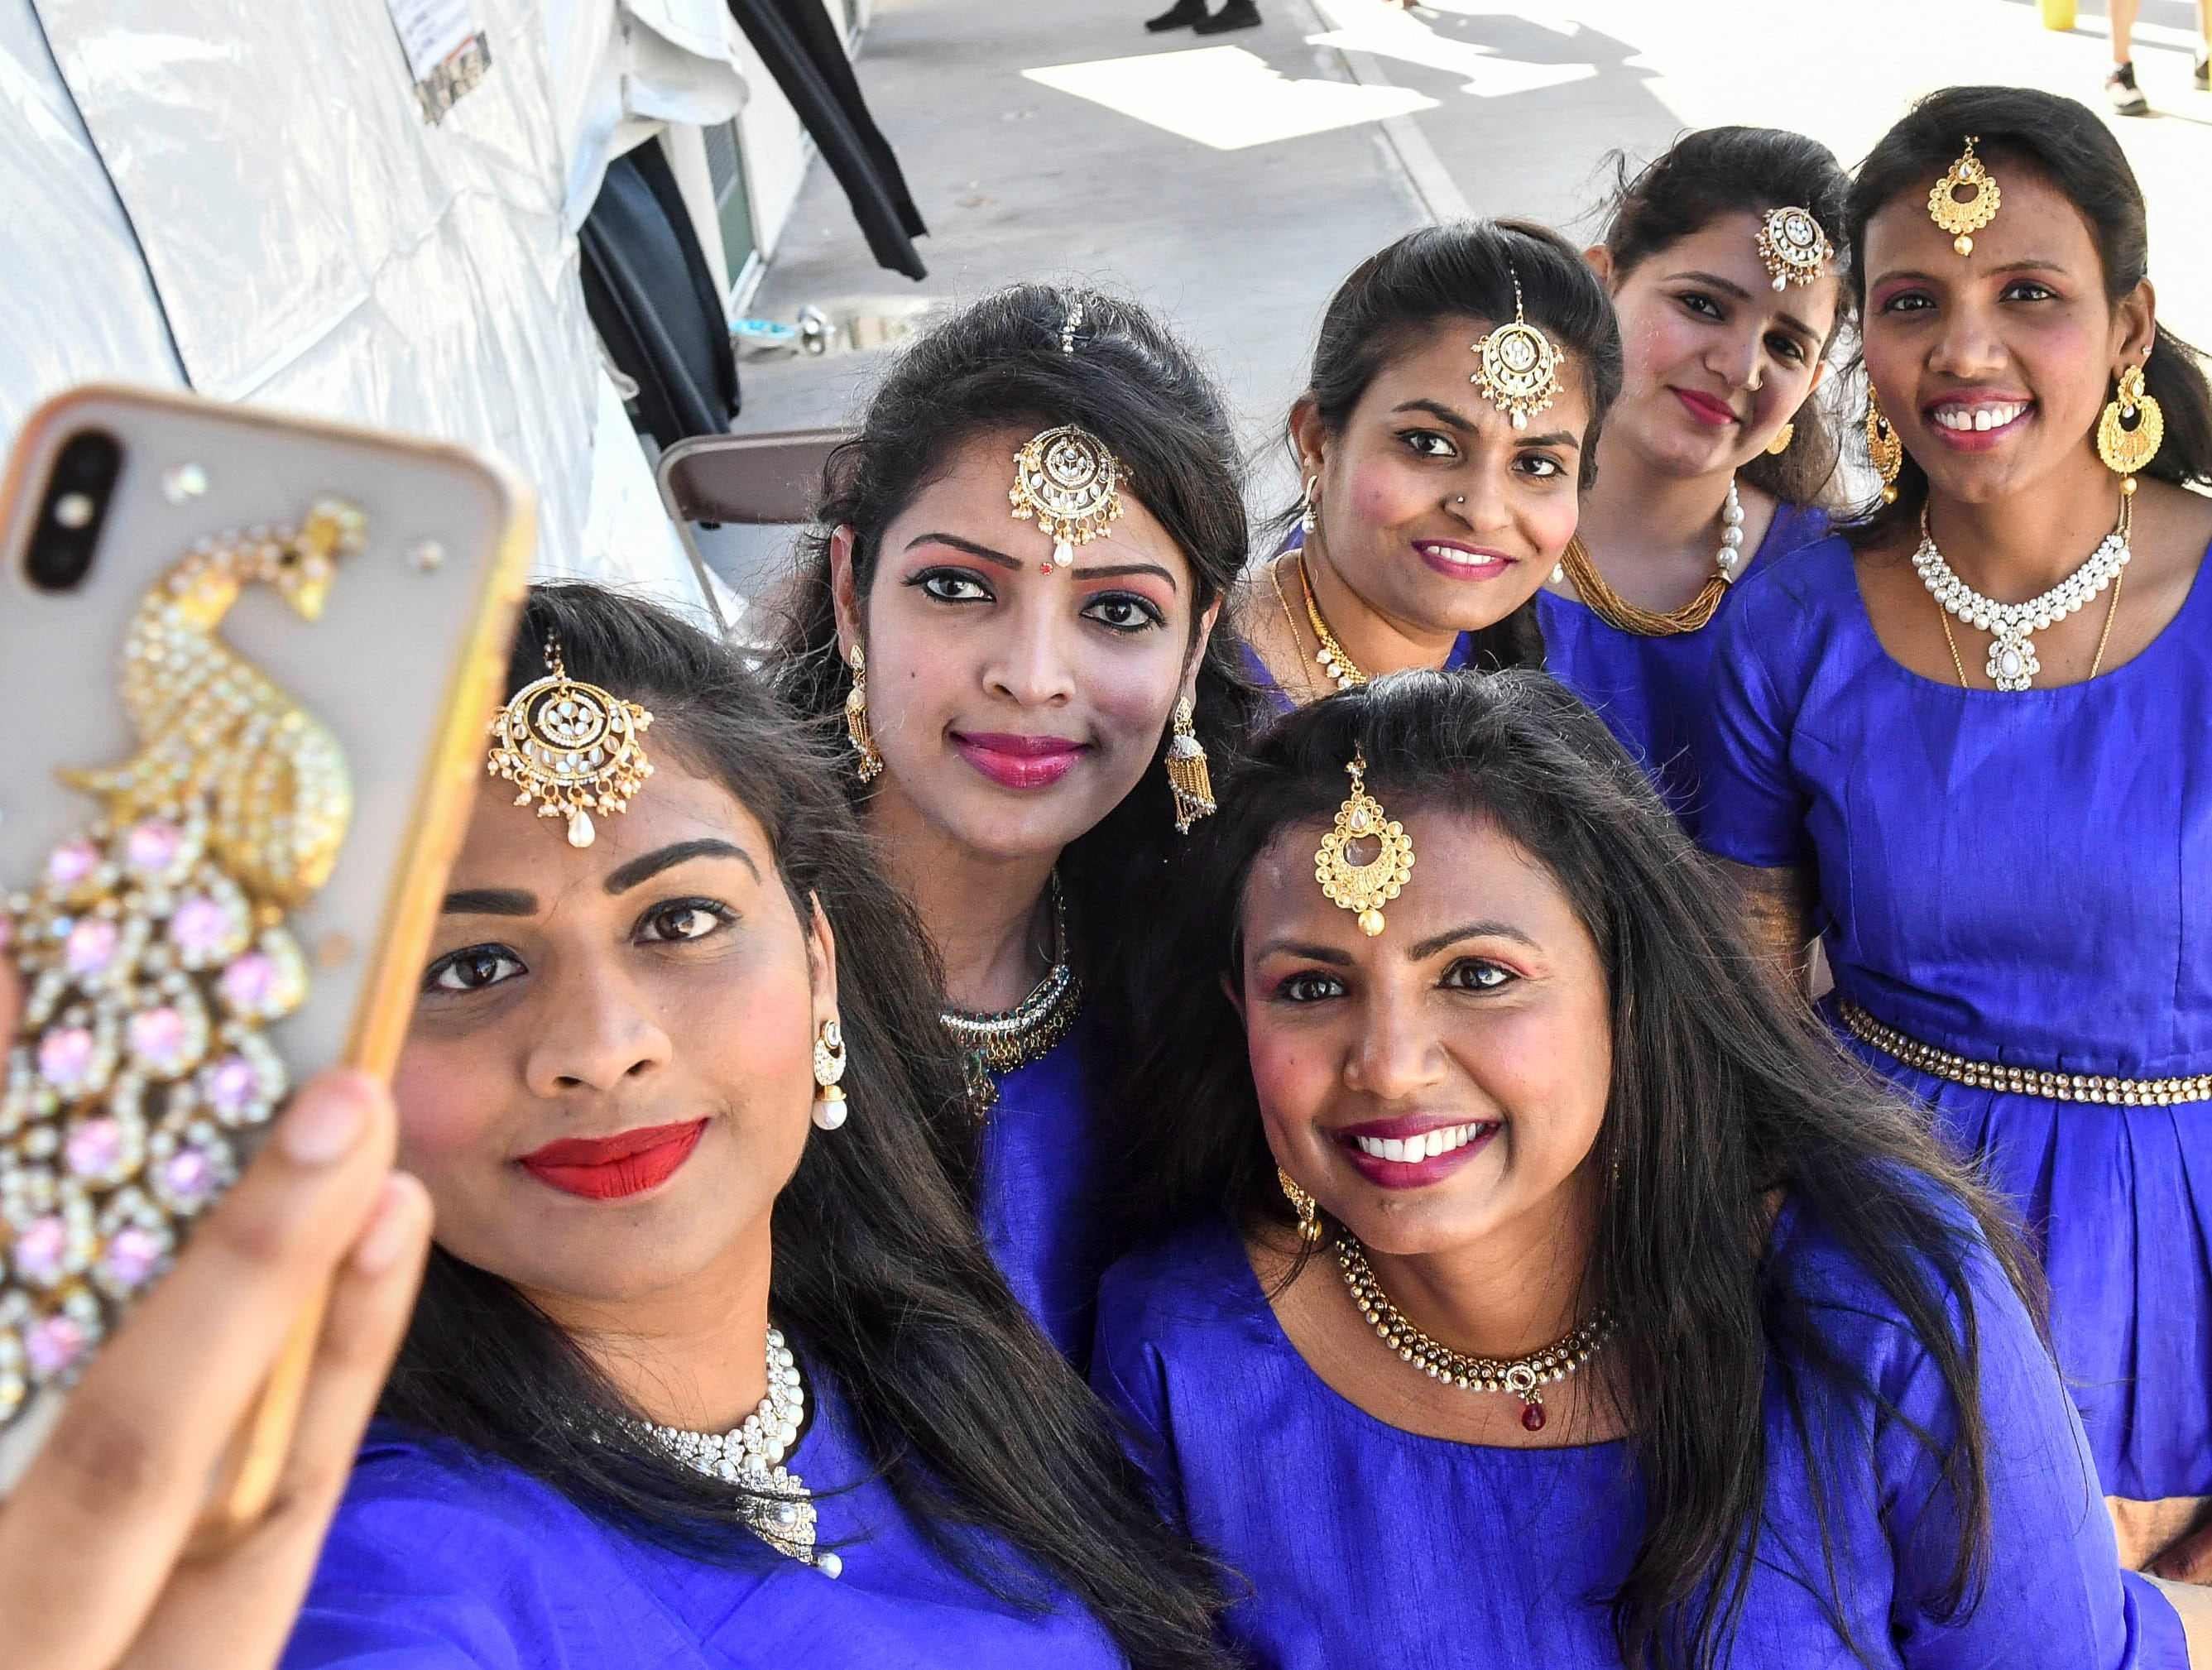 Members of Dancing Blues take a selfie before going on stage to perform at Indiafest Saturday. Indiafest continues Sunday 11-5 at Wickham Park's main pavilion.